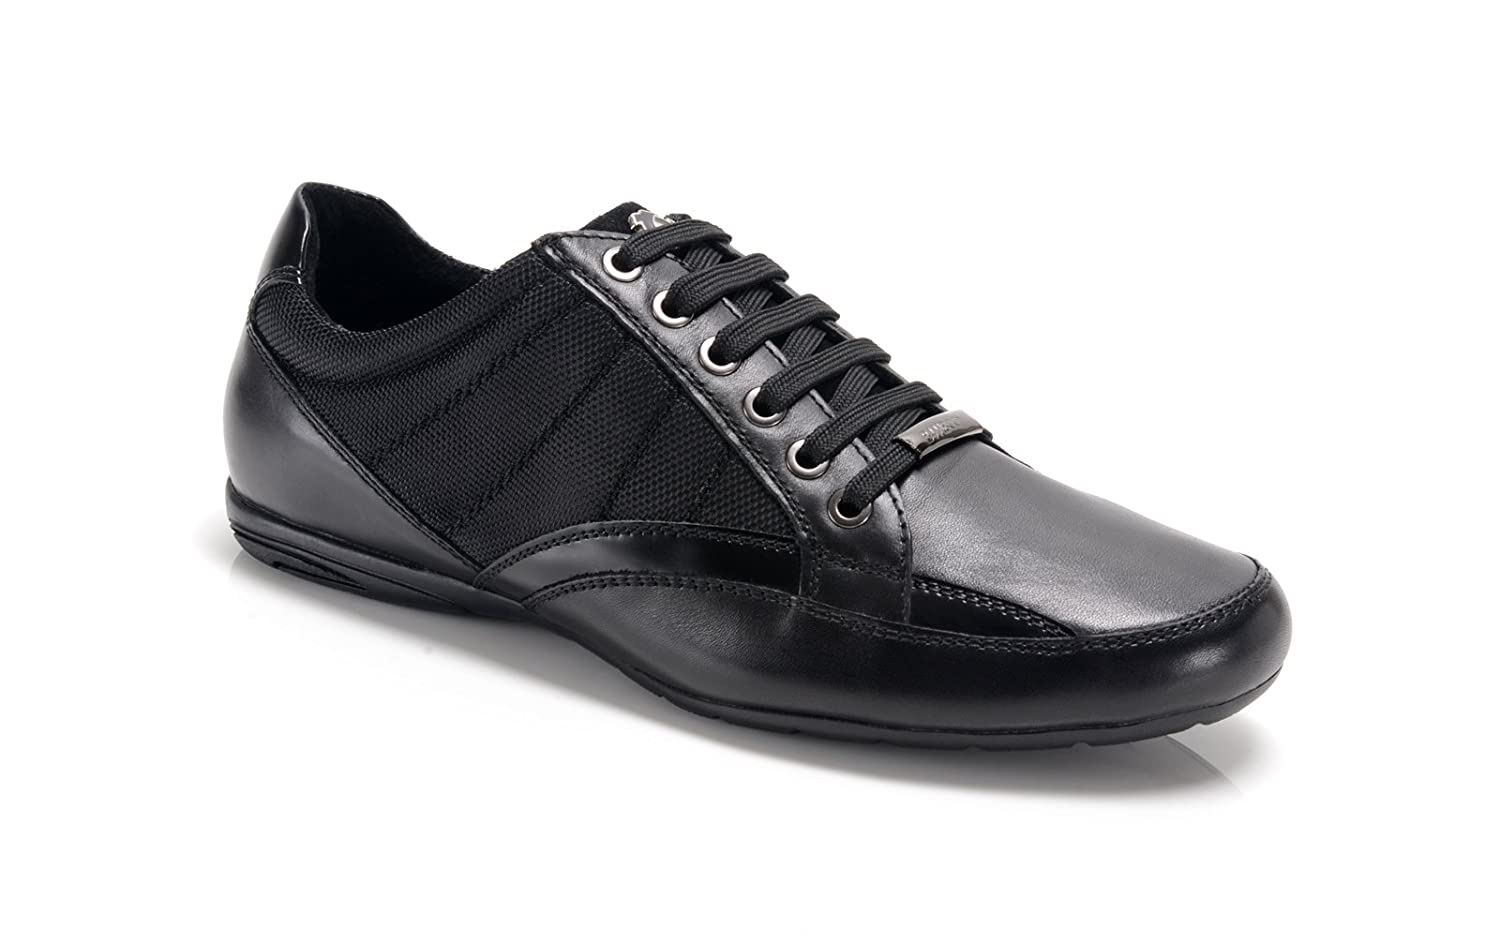 mens black casual trainers - 50% OFF